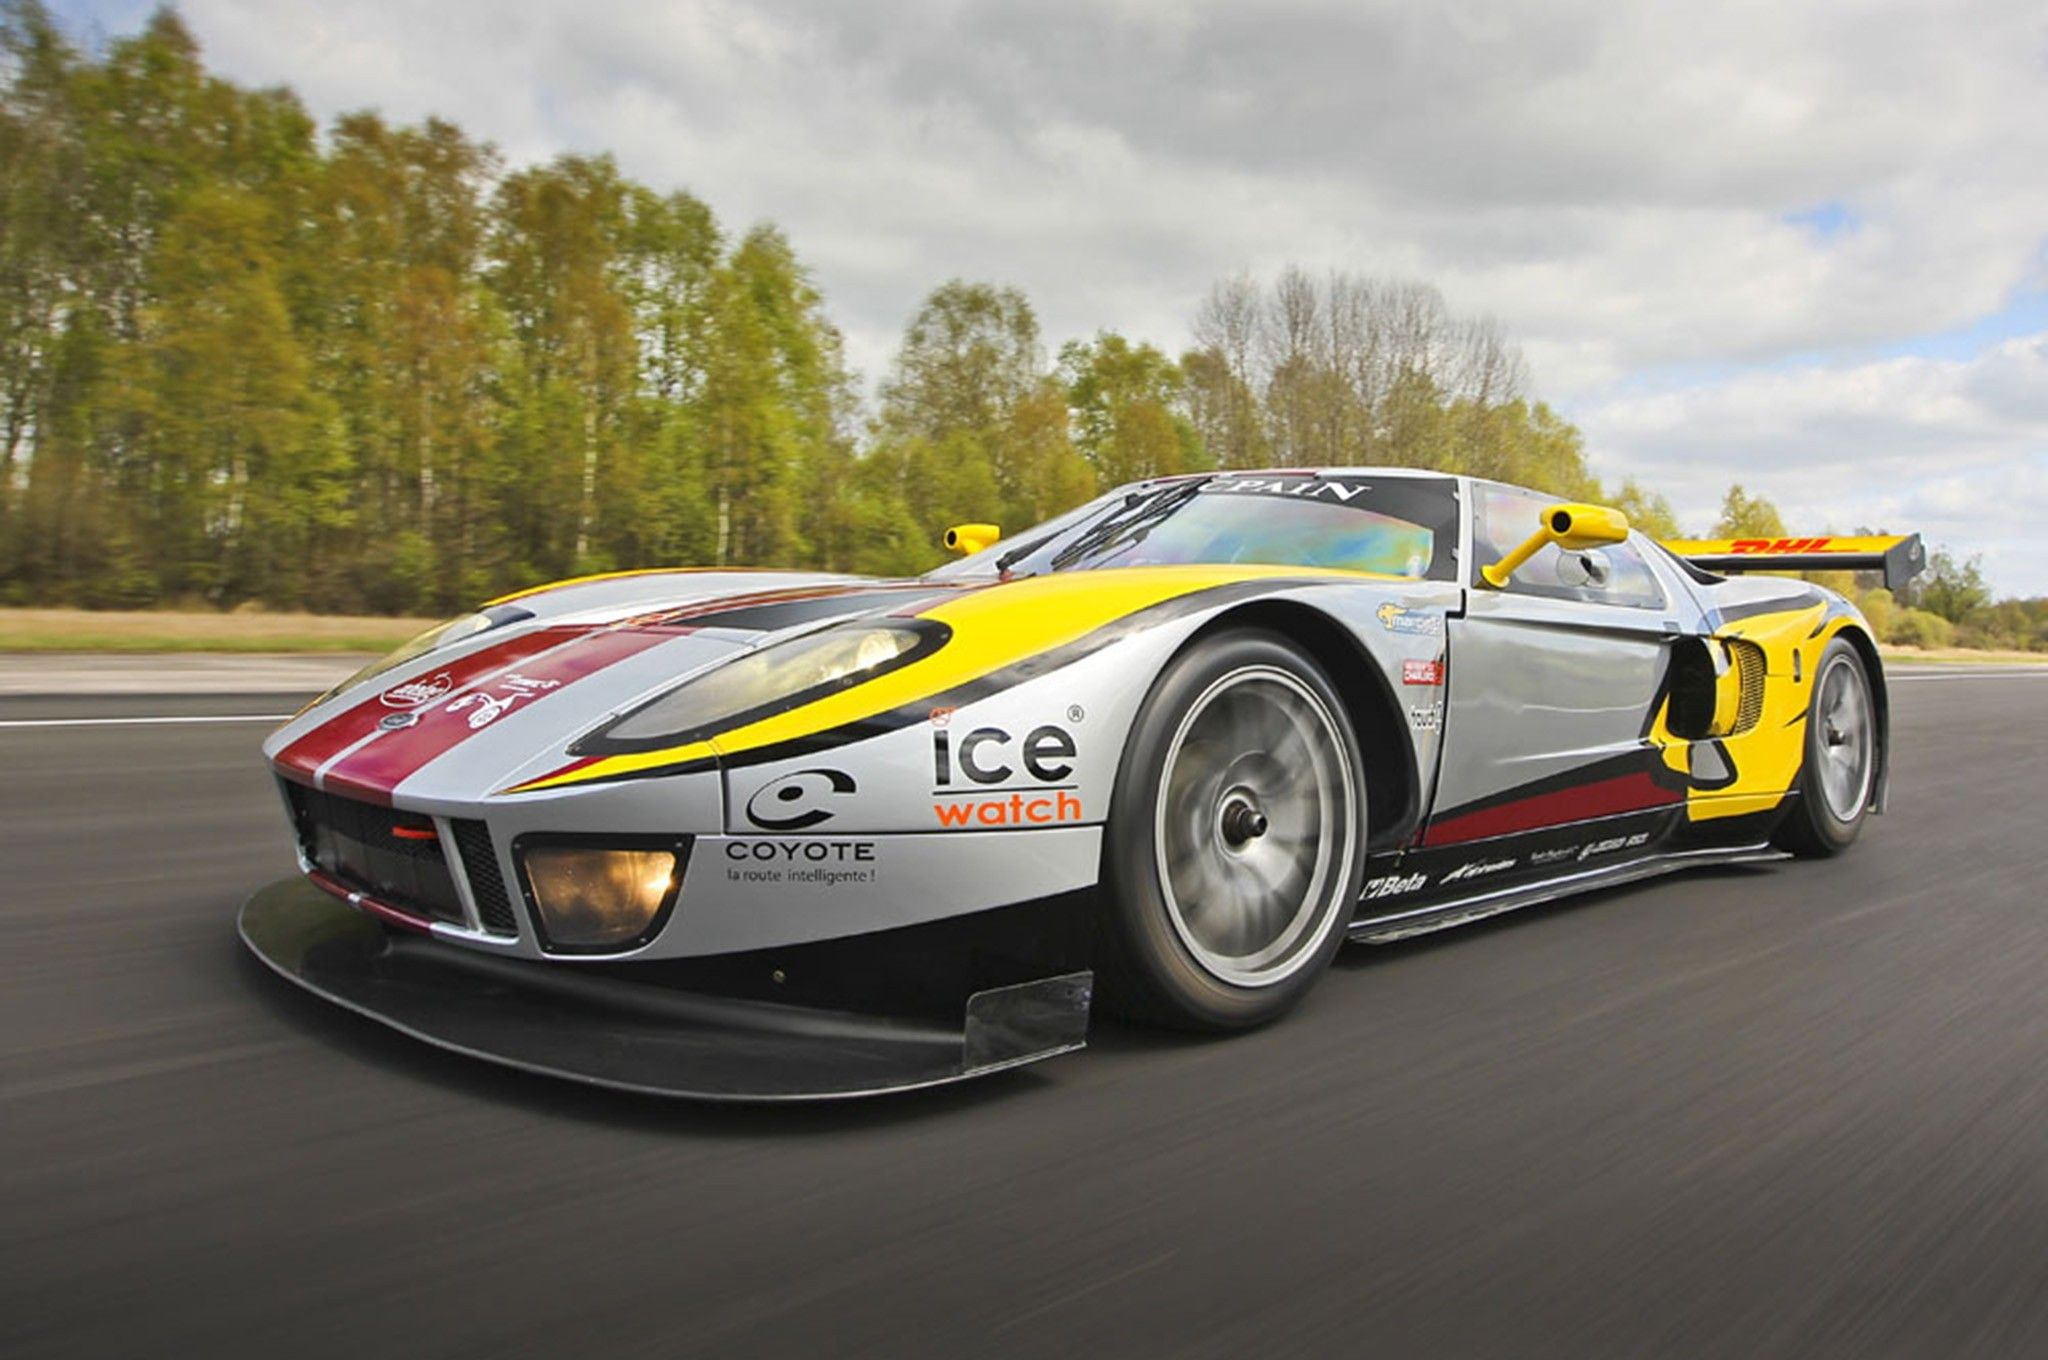 One Of Four Matech Ford Gt Race Cars For Sale On Ebay Motor Trend On